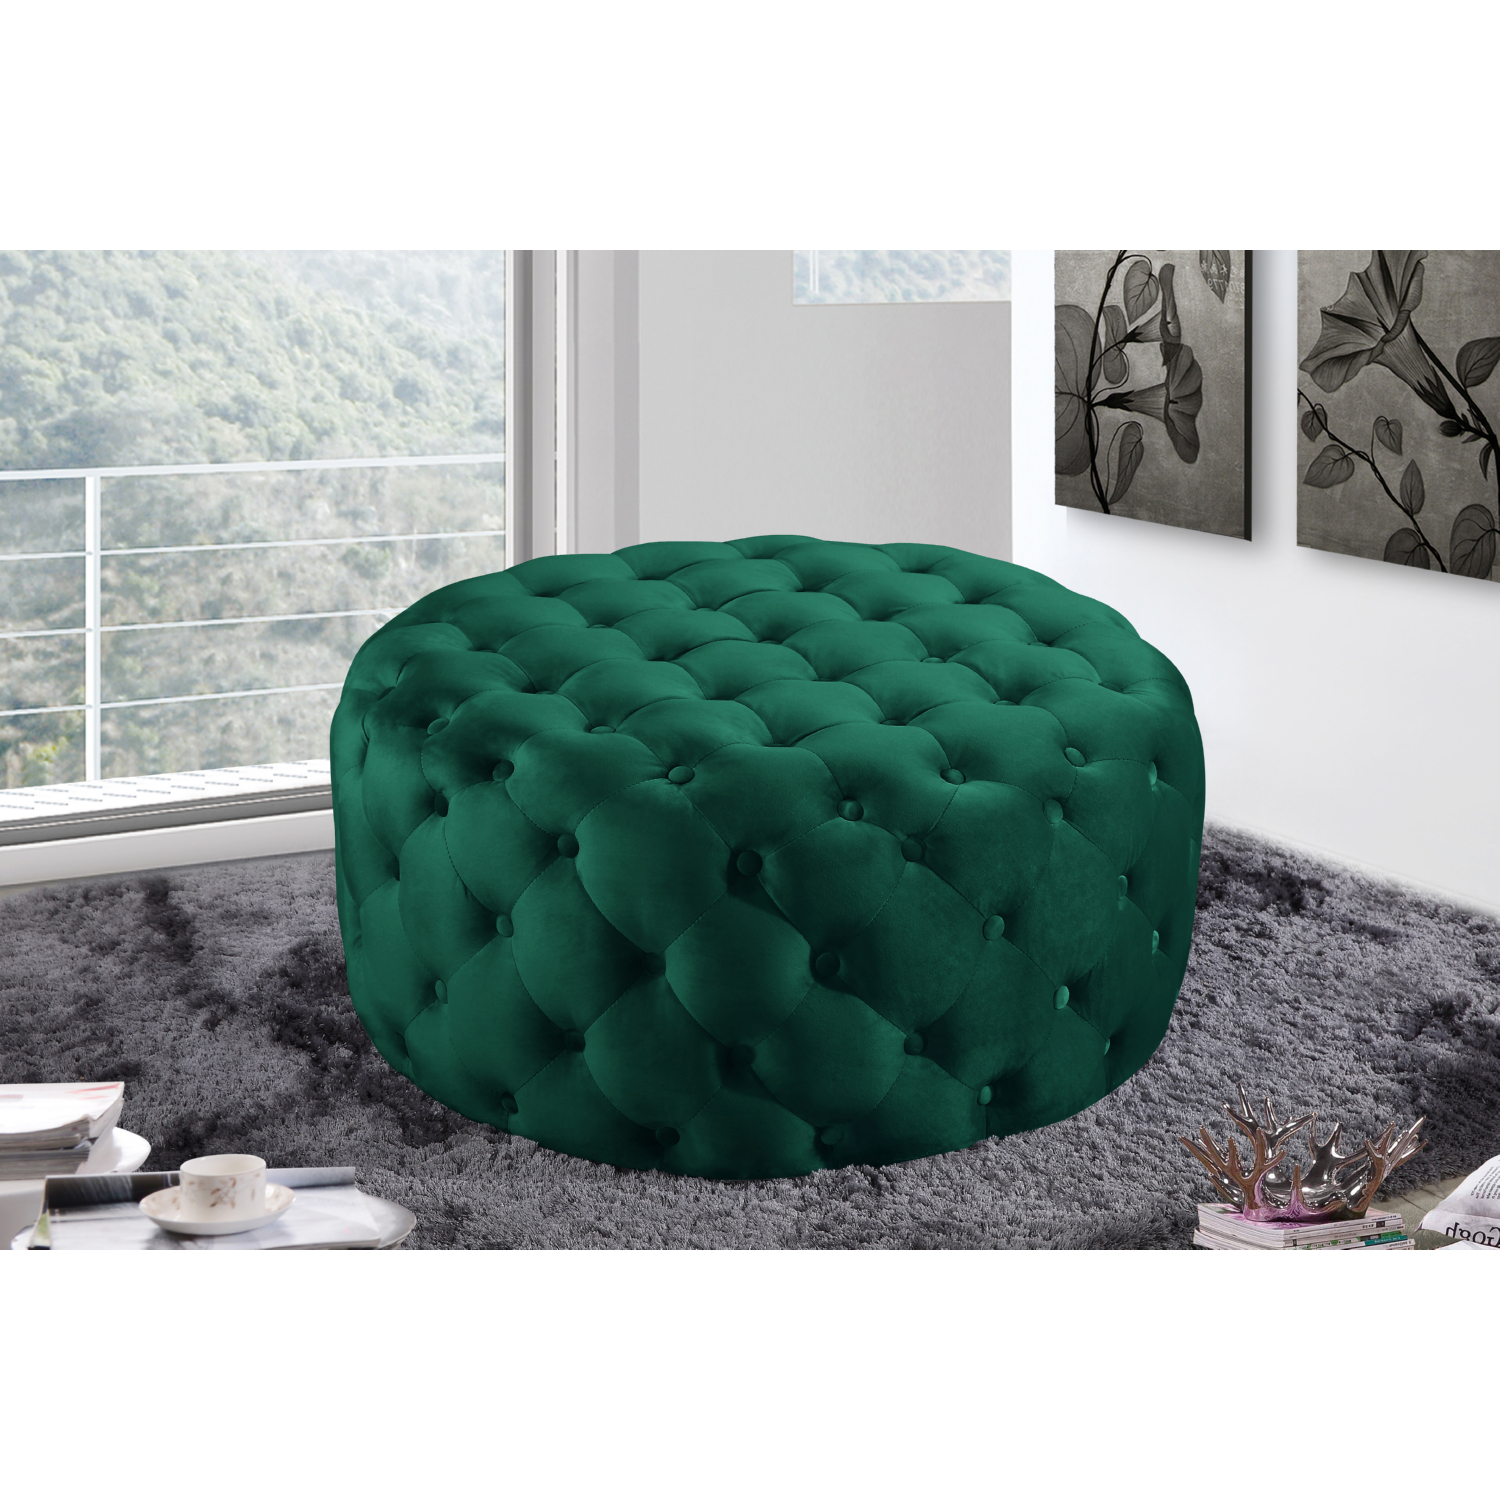 Stupendous Addison Round Ottoman Bench In Tufted Green Velvet By Meridian Furniture Bralicious Painted Fabric Chair Ideas Braliciousco